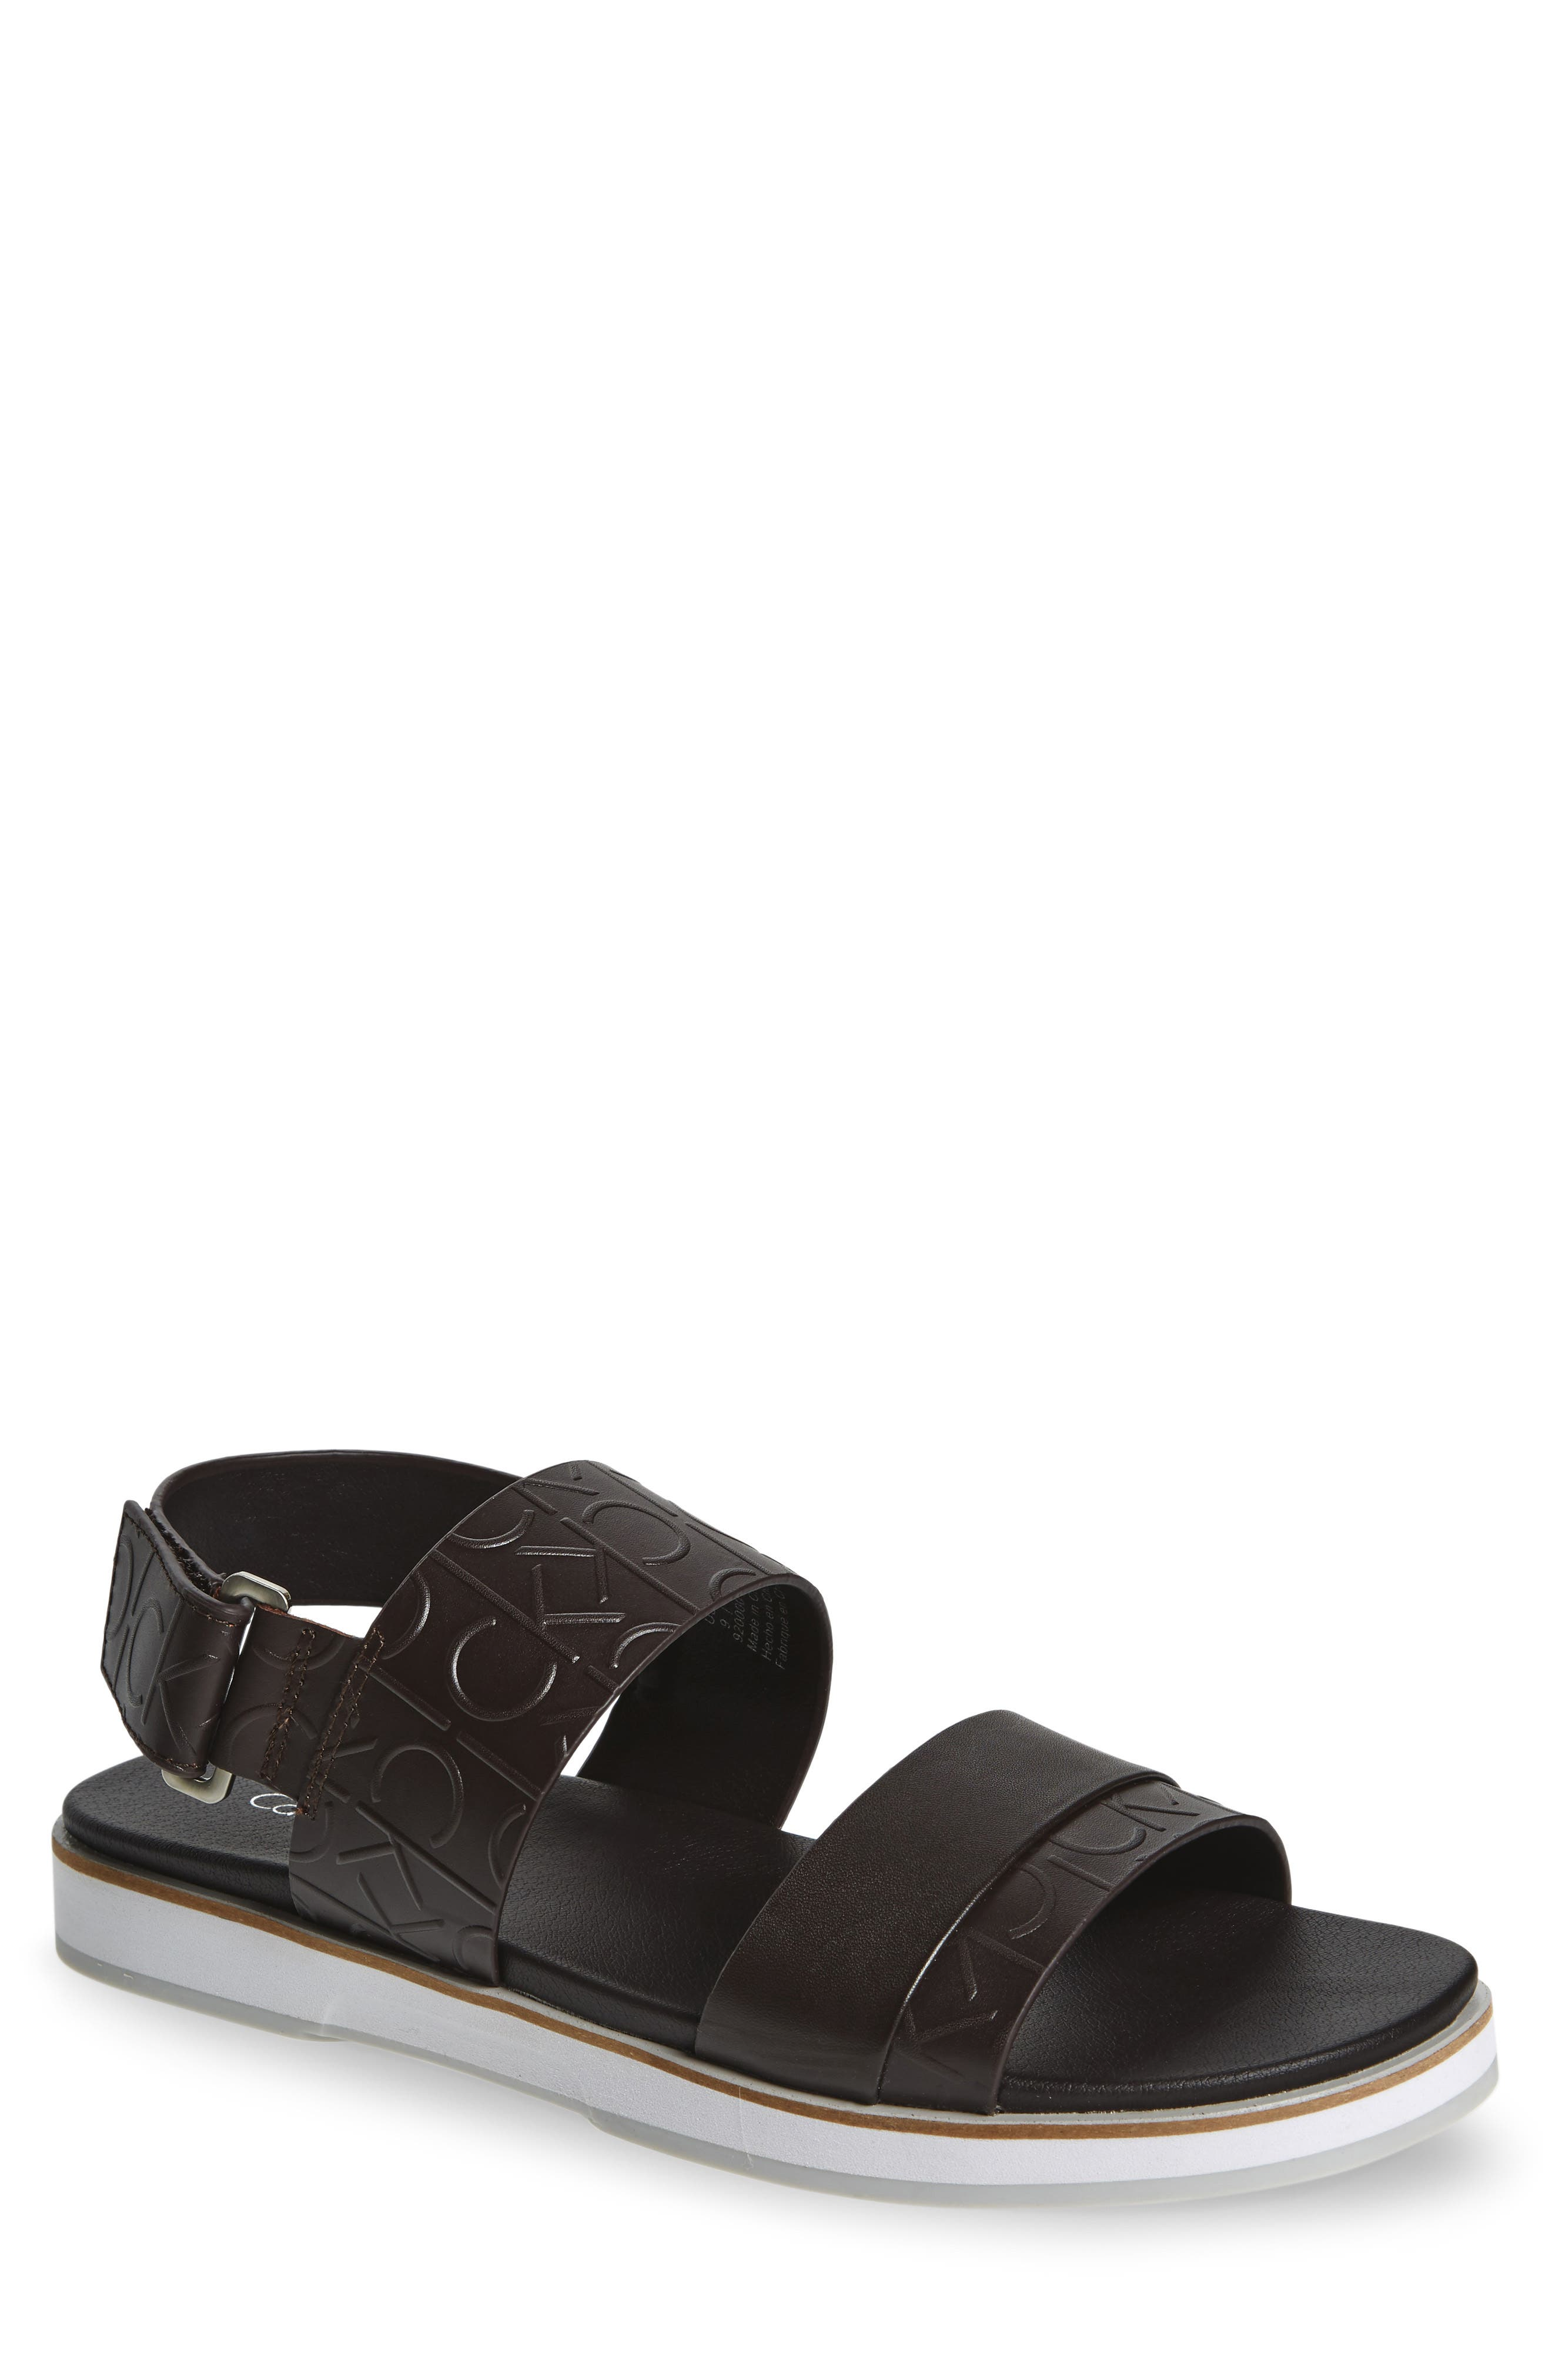 'Dex' Embossed Leather Sandal,                             Main thumbnail 6, color,